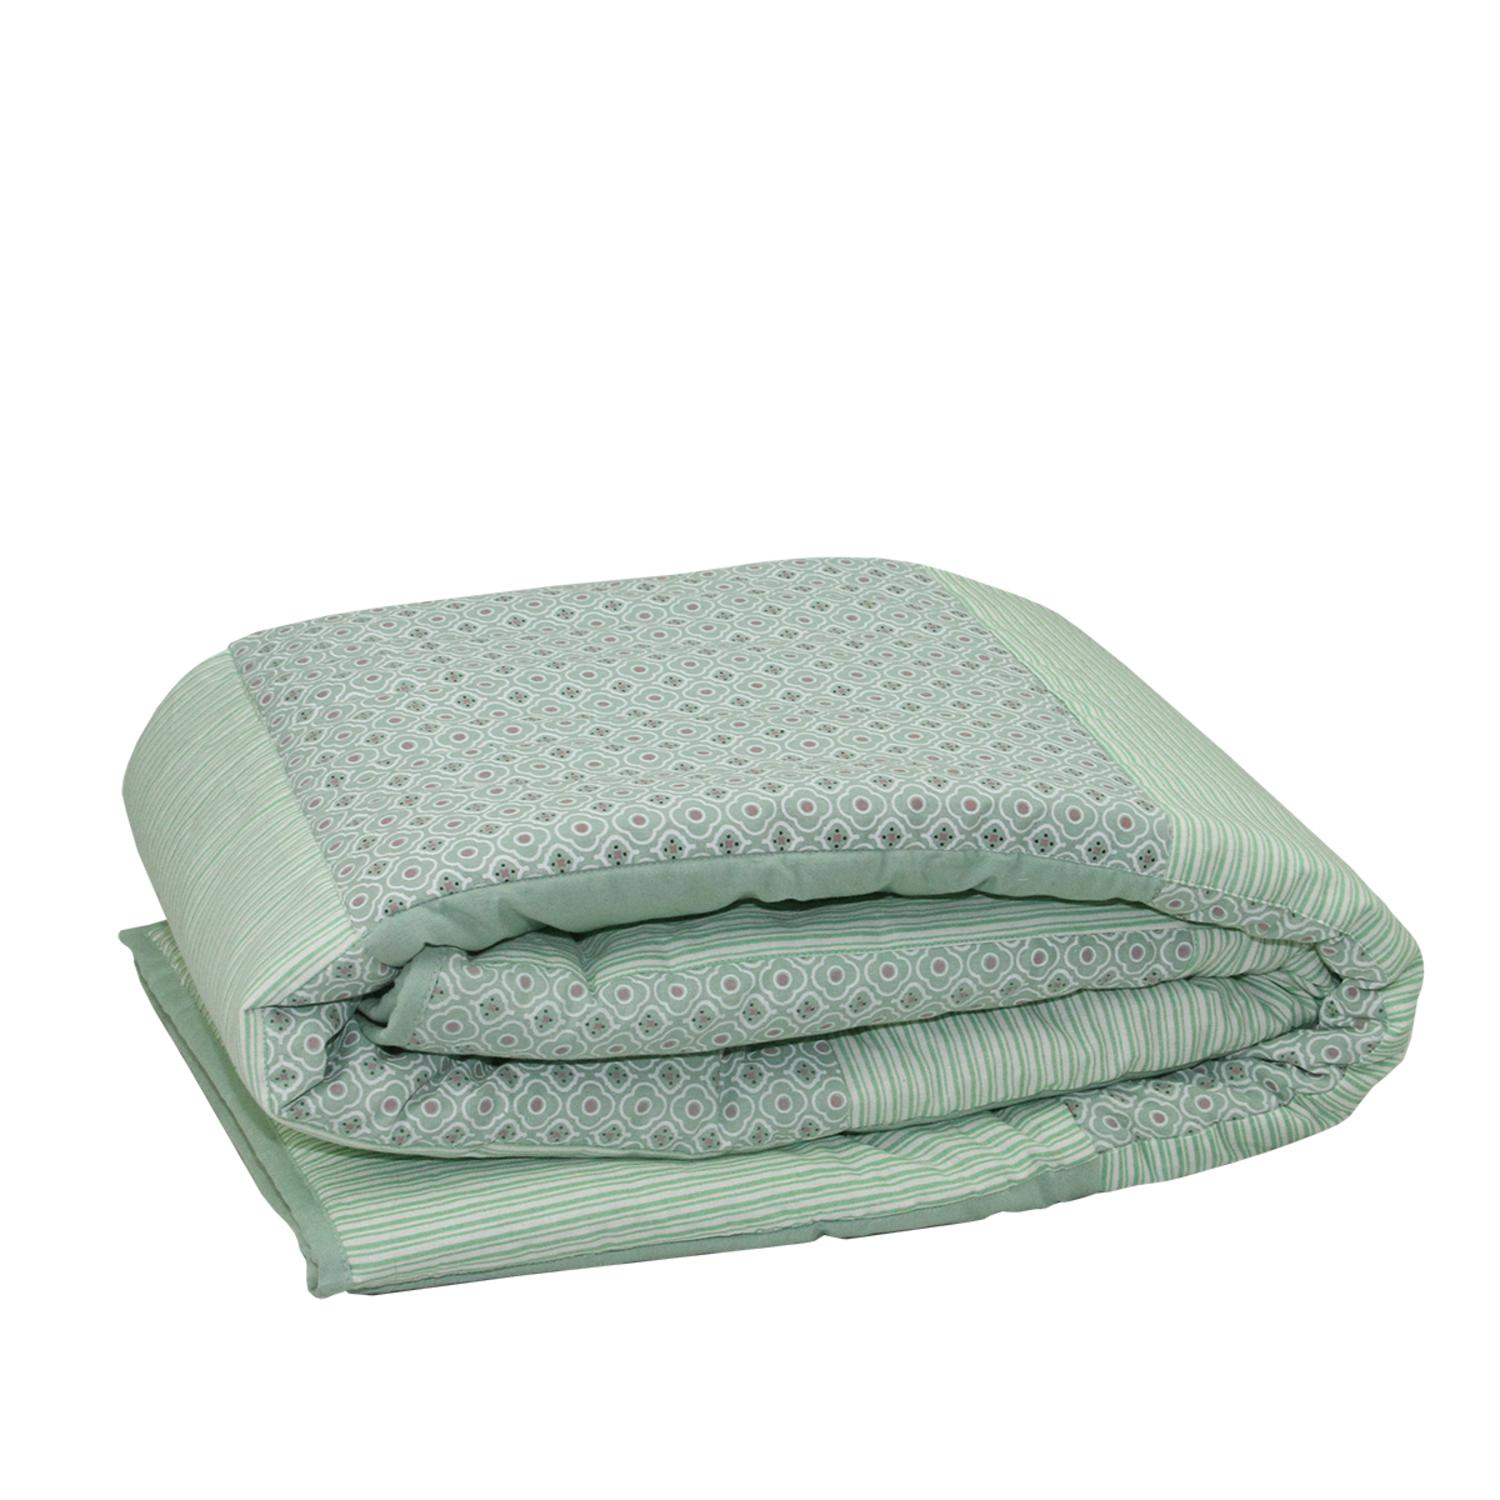 ''78.75'''' New Romance Spring Green Stripe and Quatrefoil Quilted Throw BLANKET''